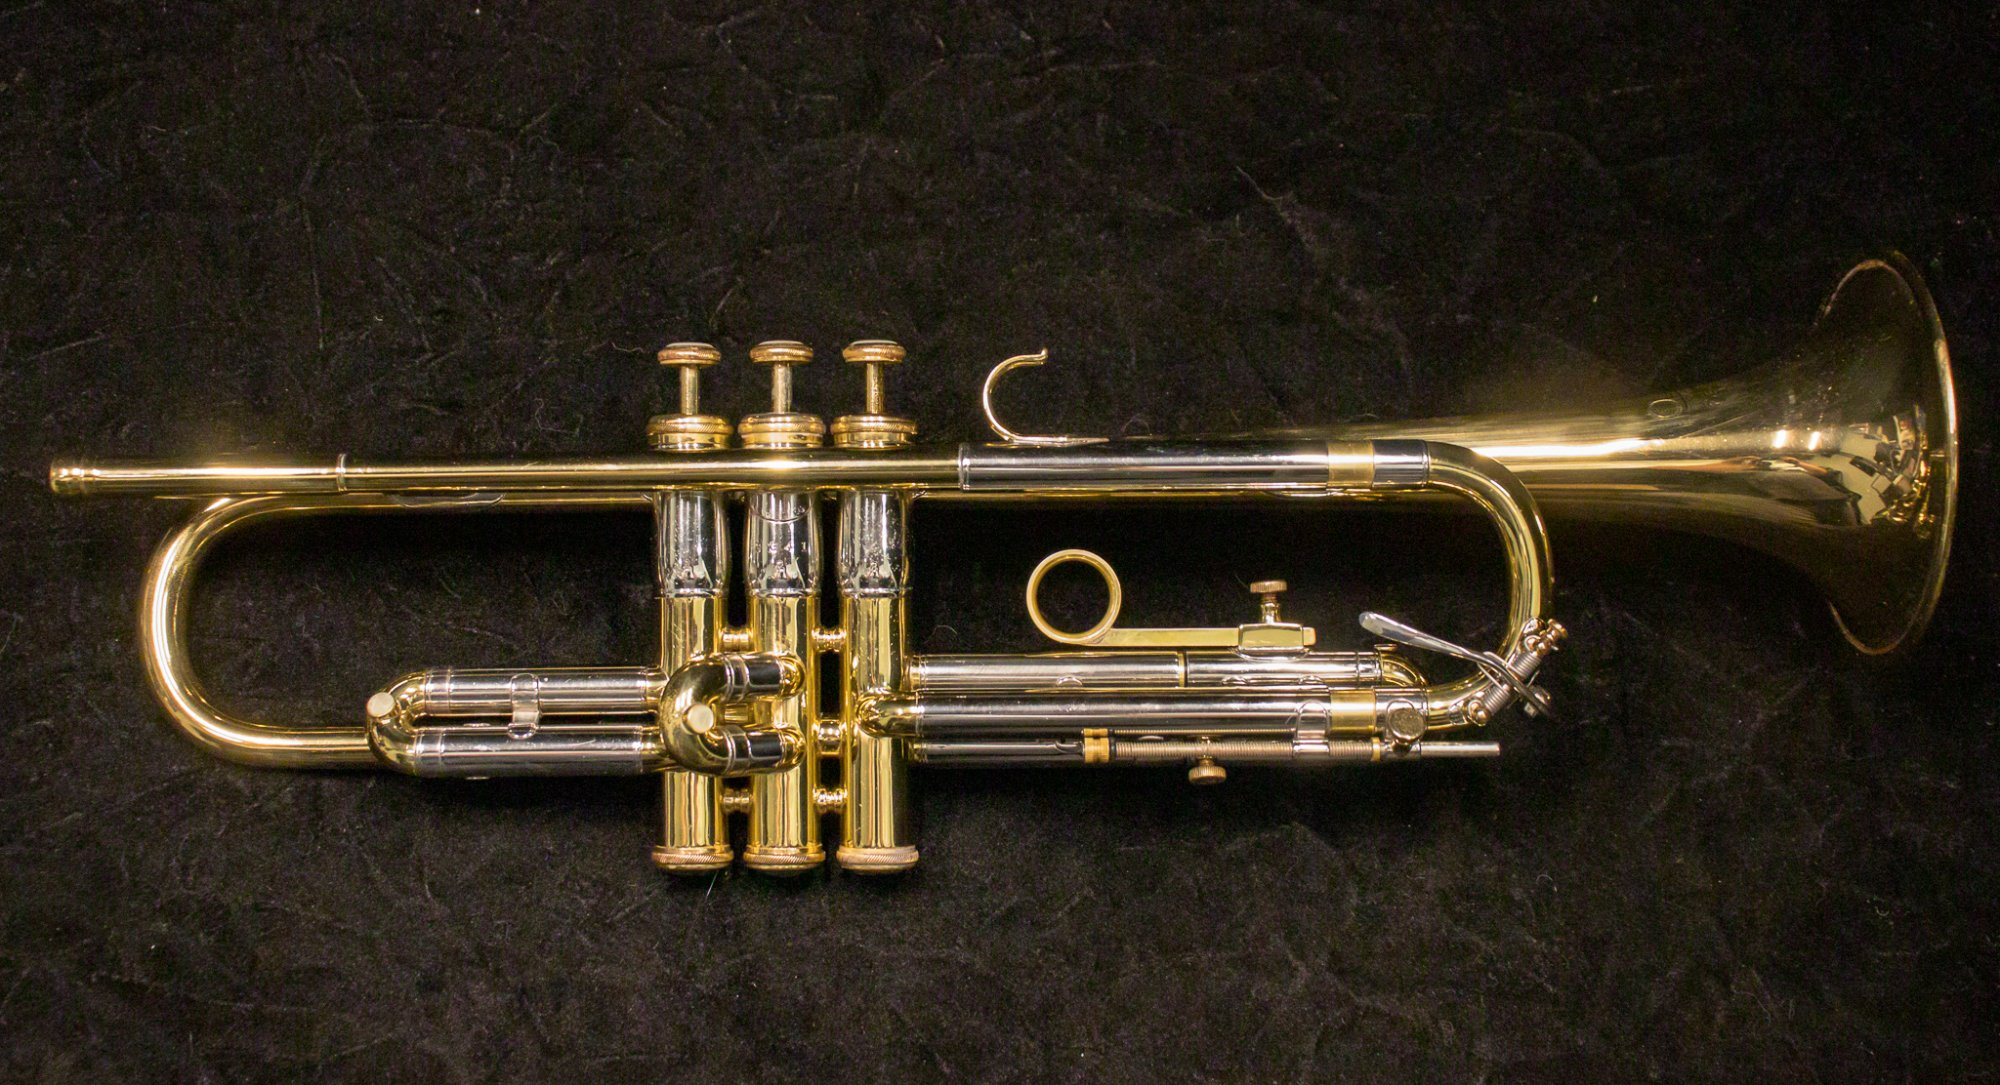 1937 The Olds Bb Trumpet